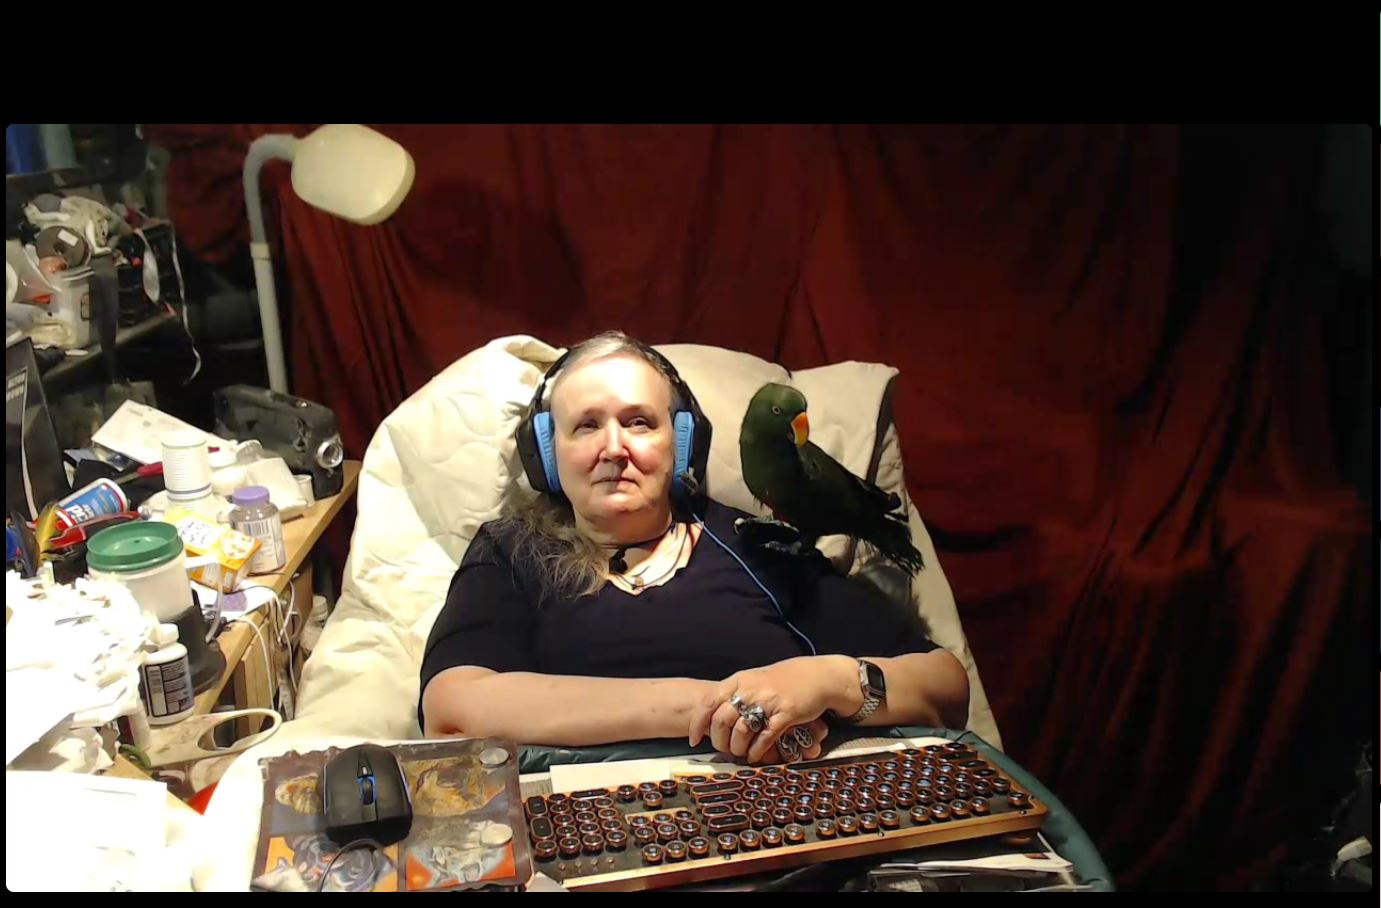 Person with a parrot on her arm is sitting in an armchair. Keyboard and mouse are in front of the person.